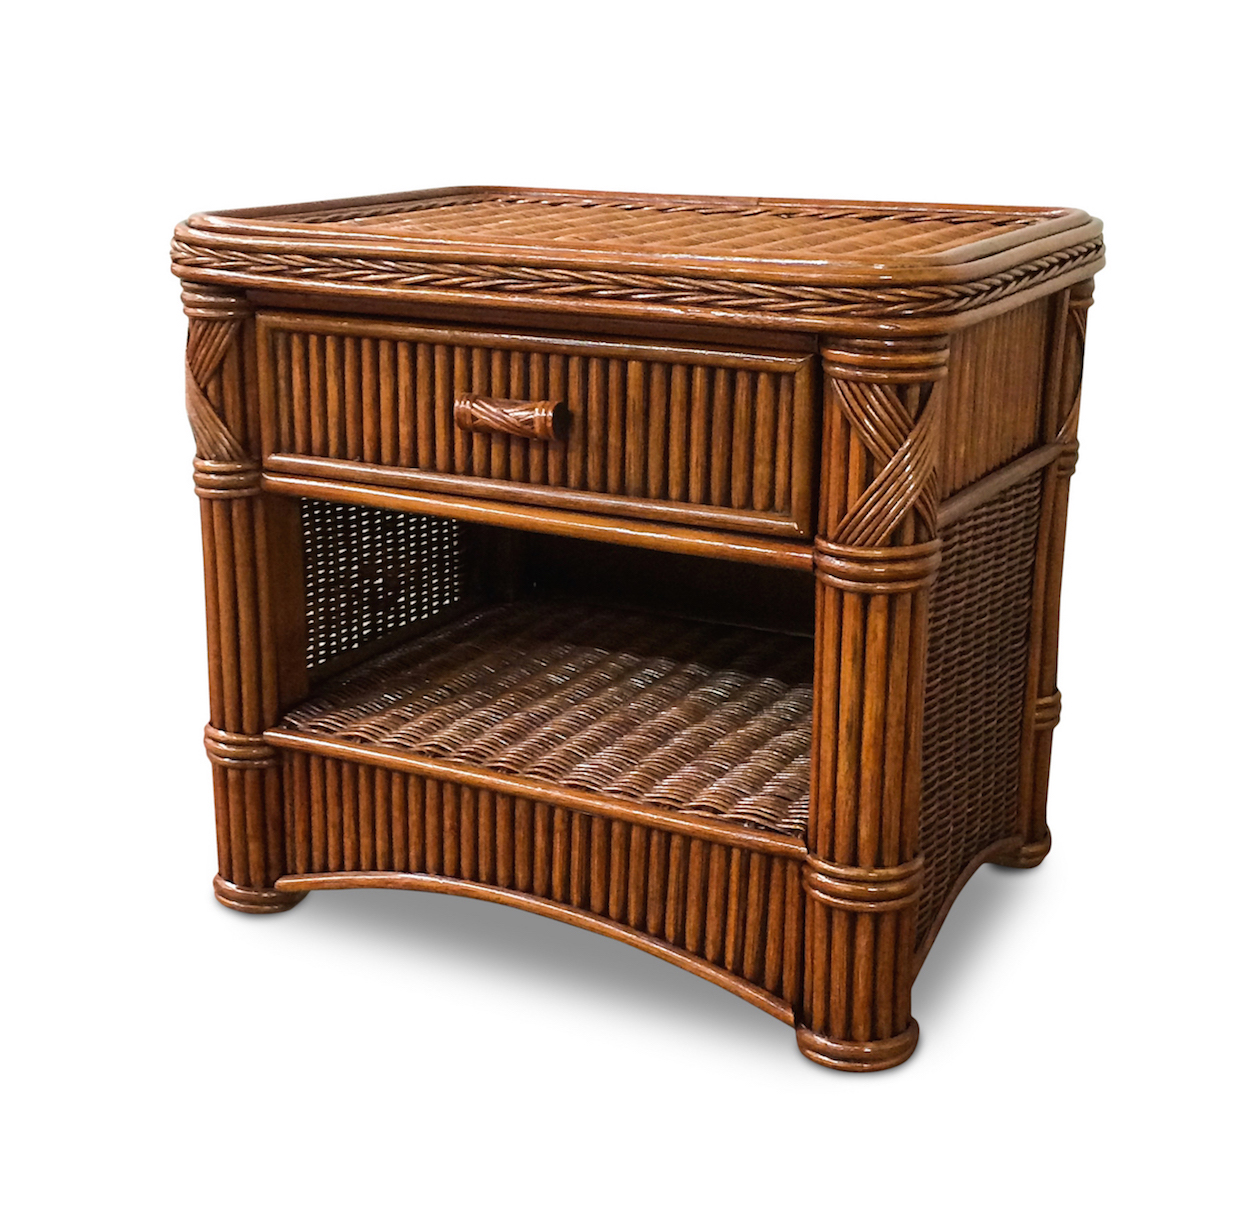 Furniture Bedroom Furniture Nightstand Rattan Wicker Nightstand